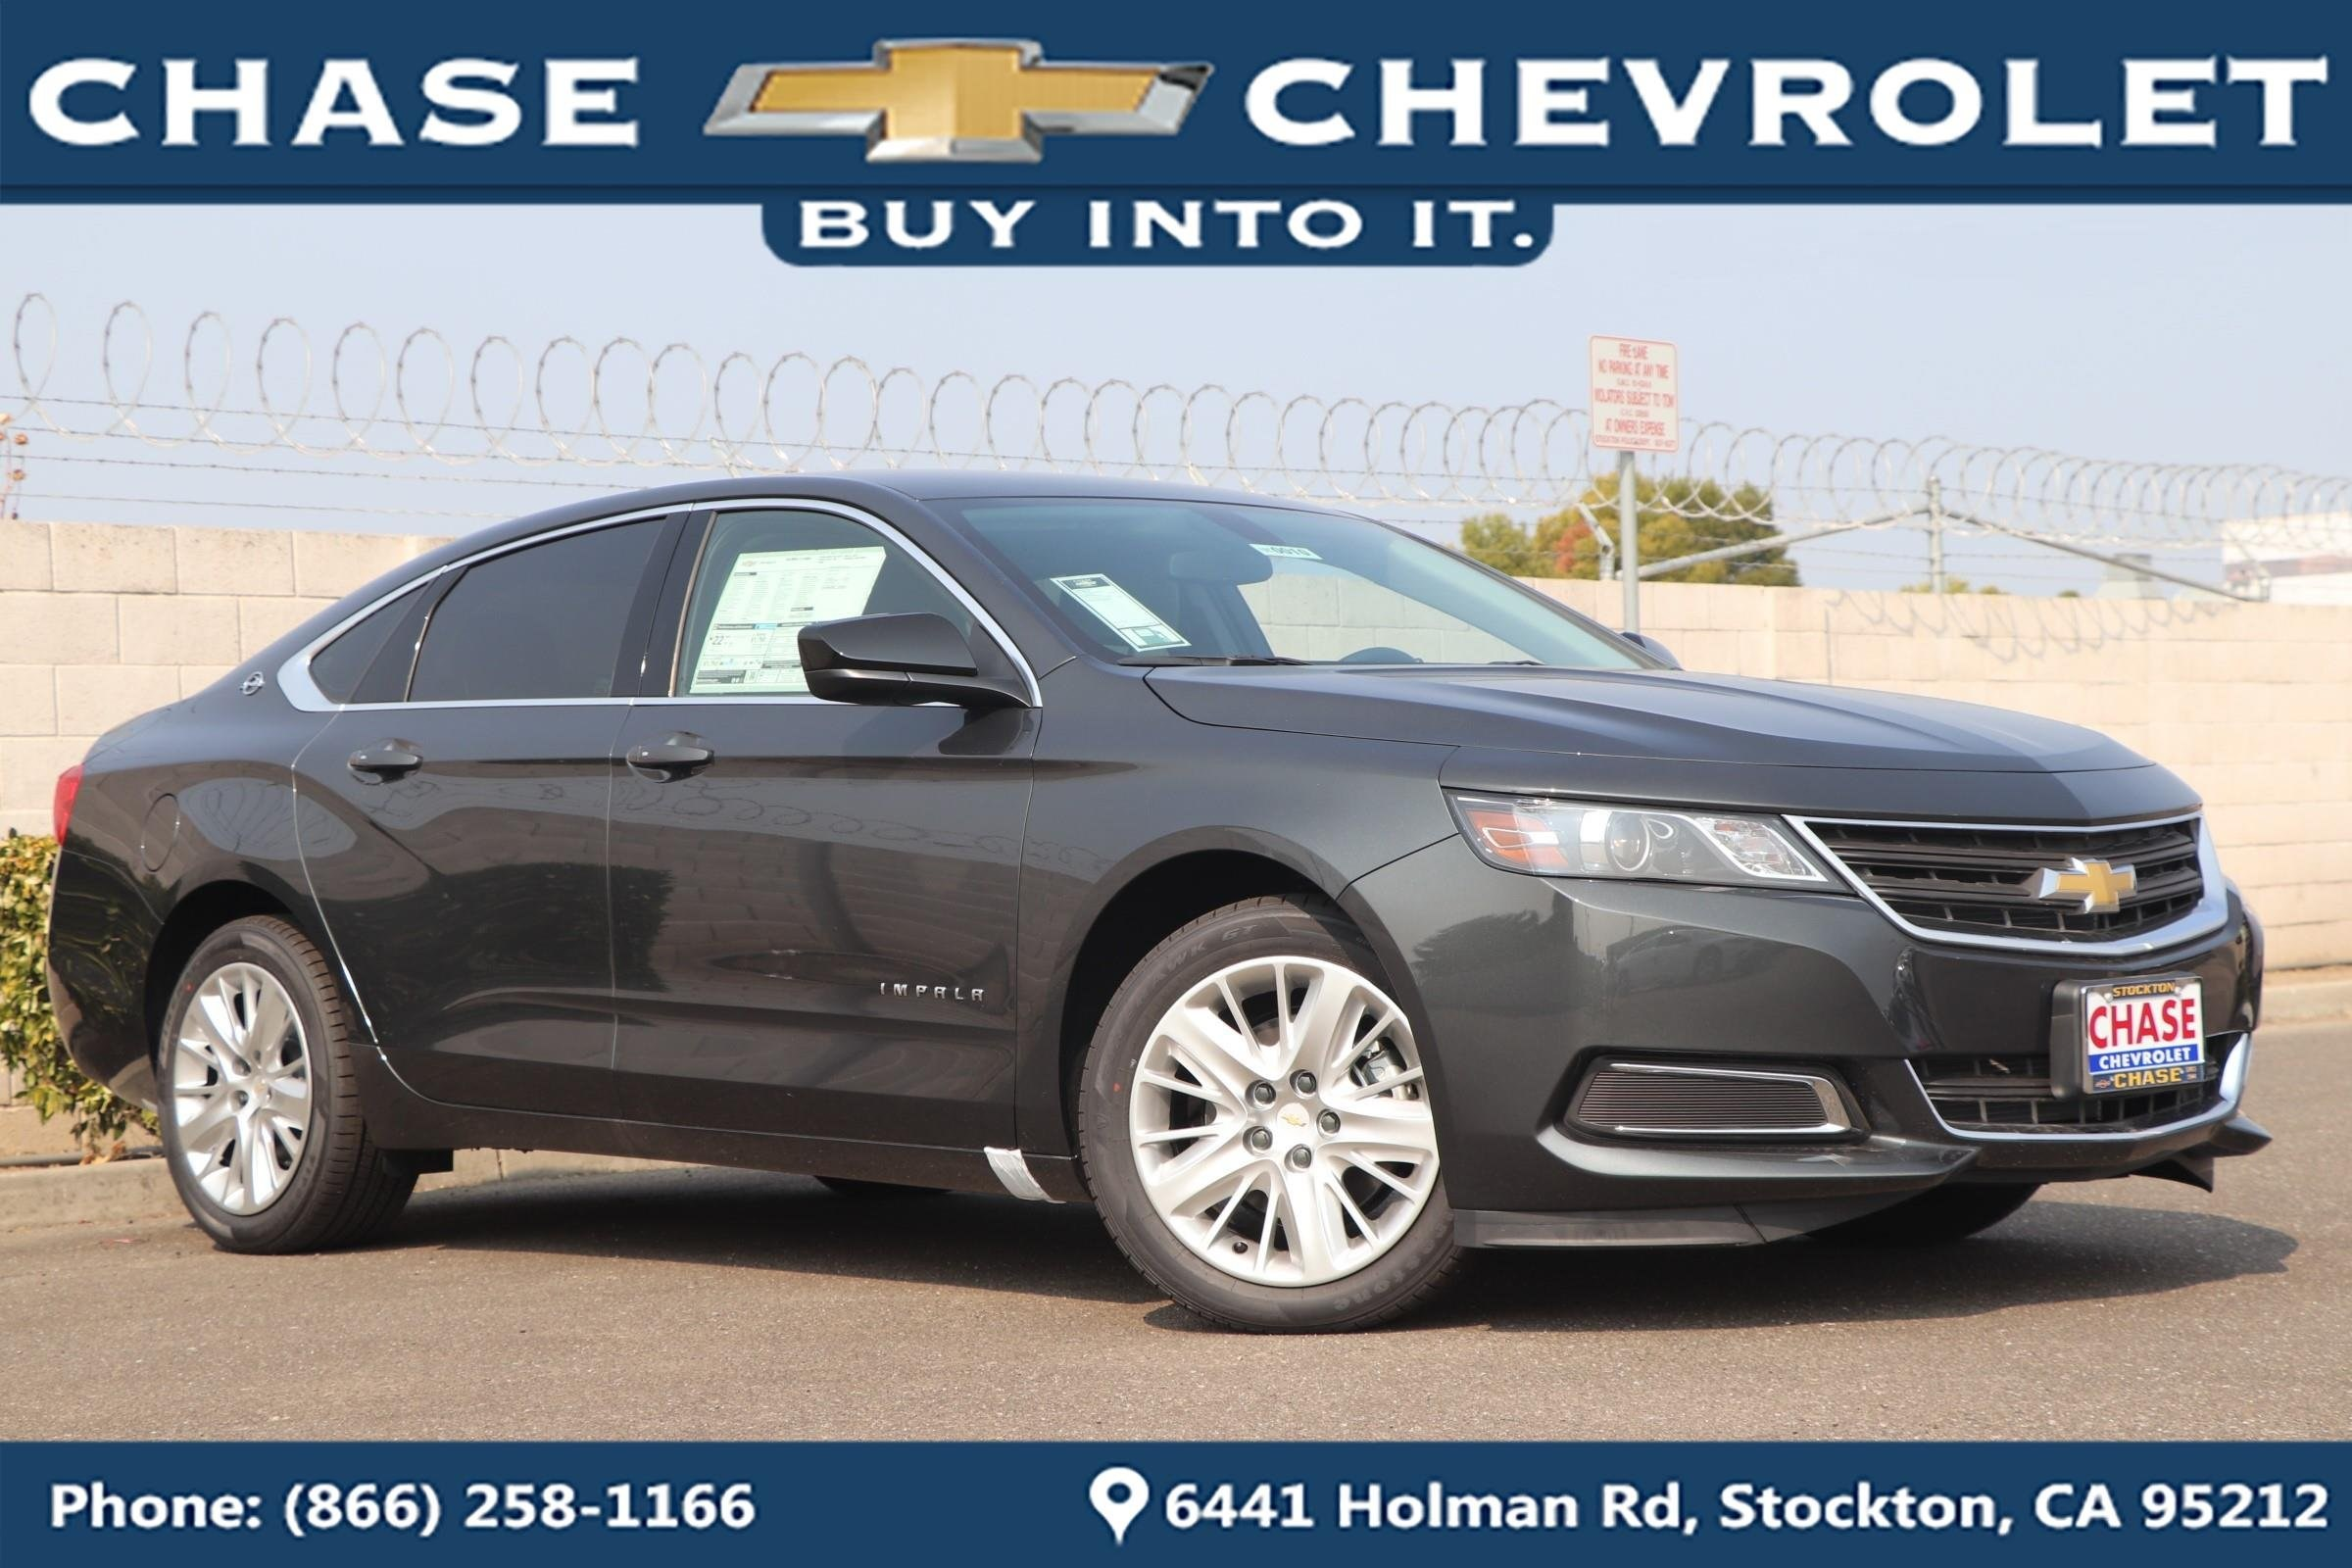 New 2019 Chevrolet Impala for Sale in Stockton CA